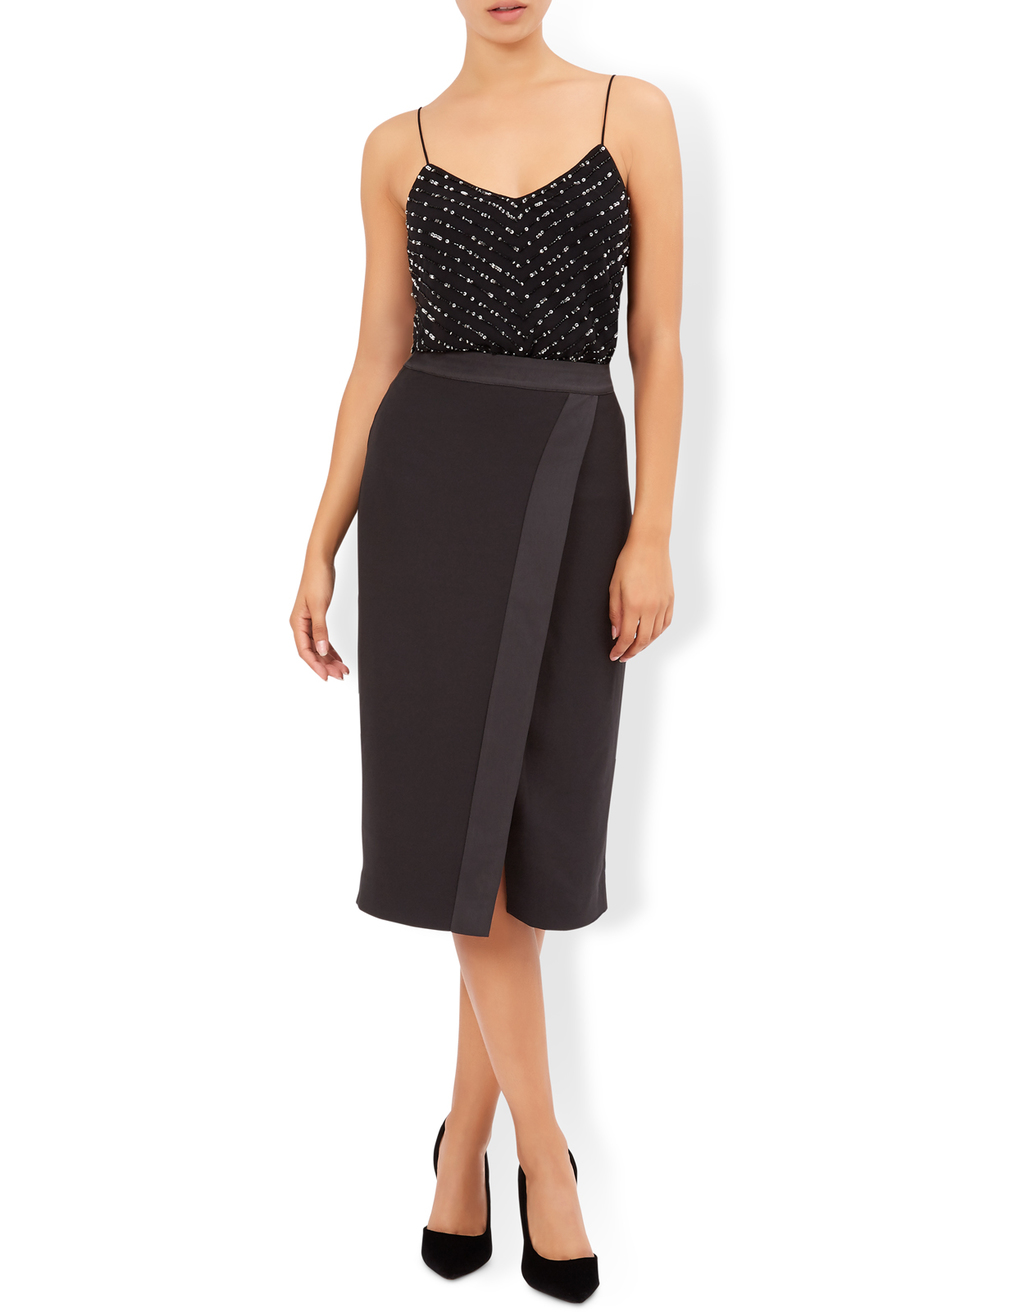 Petra Skirt - length: below the knee; pattern: plain; style: pencil; fit: tailored/fitted; waist: mid/regular rise; predominant colour: black; occasions: evening; fibres: polyester/polyamide - 100%; pattern type: fabric; texture group: woven light midweight; season: a/w 2016; wardrobe: event